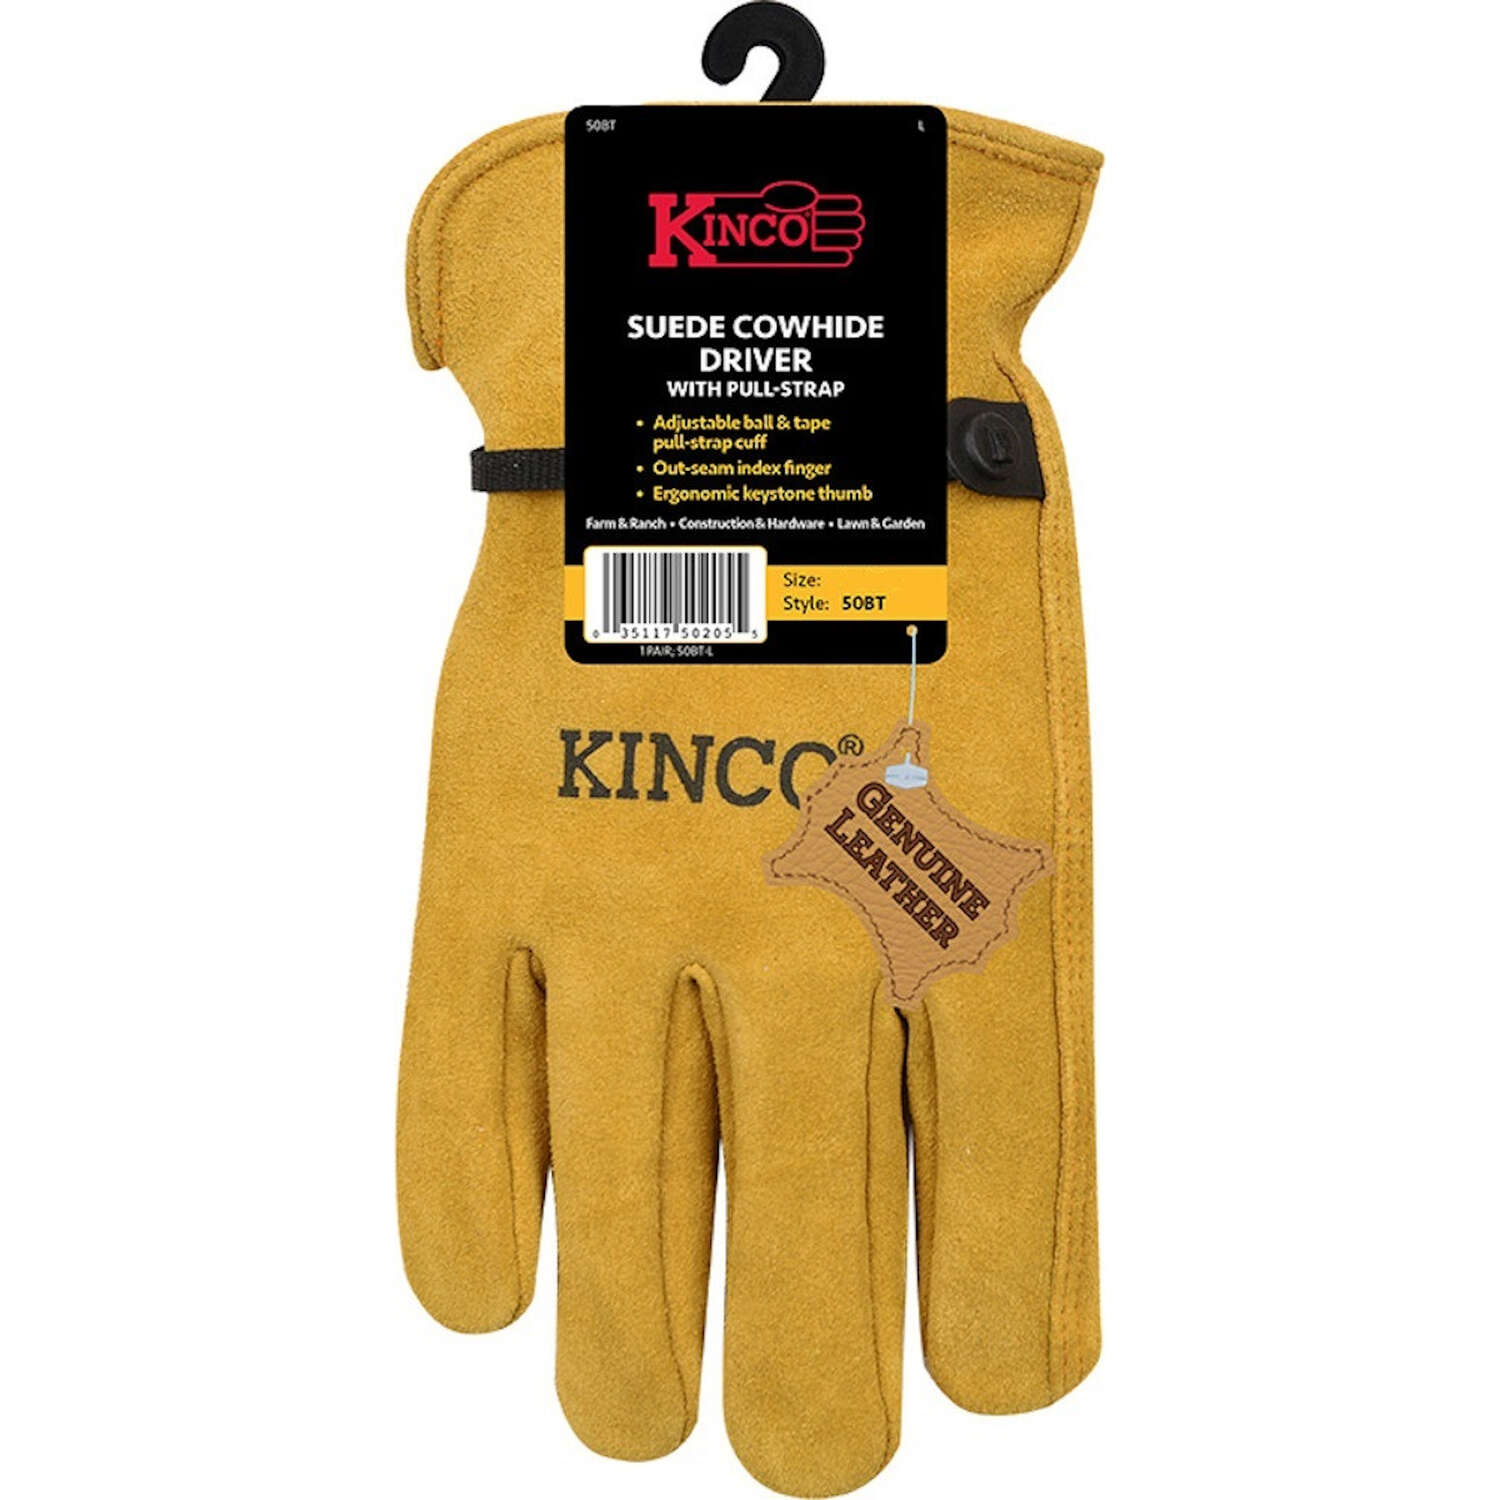 Kinco  Men's  Indoor/Outdoor  Driver Gloves  Gold  M  1 pair